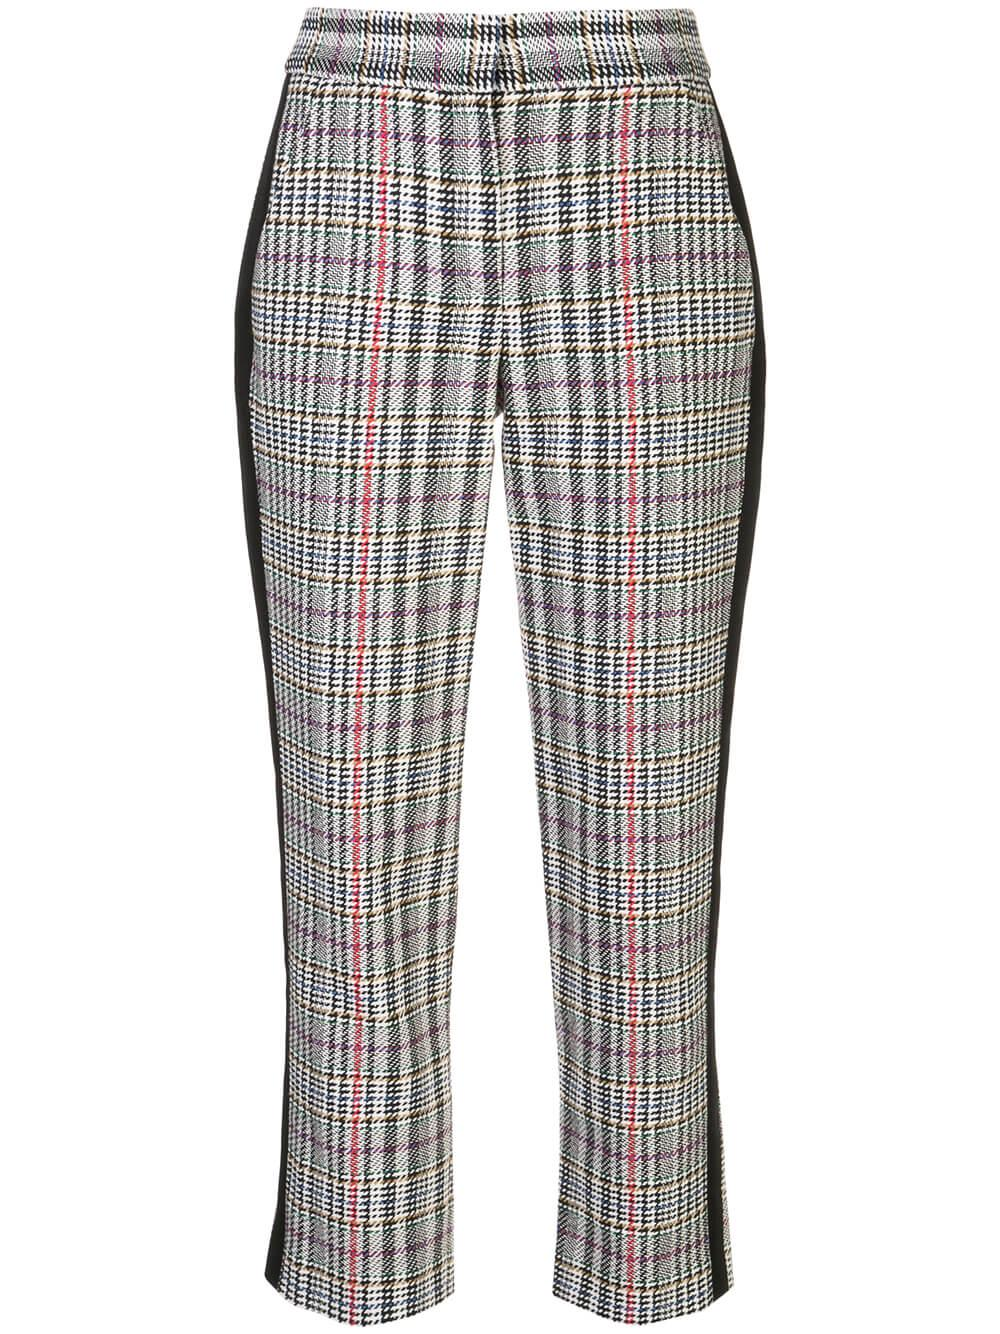 Gemini Plaid Pant Item # 2001HT0076350